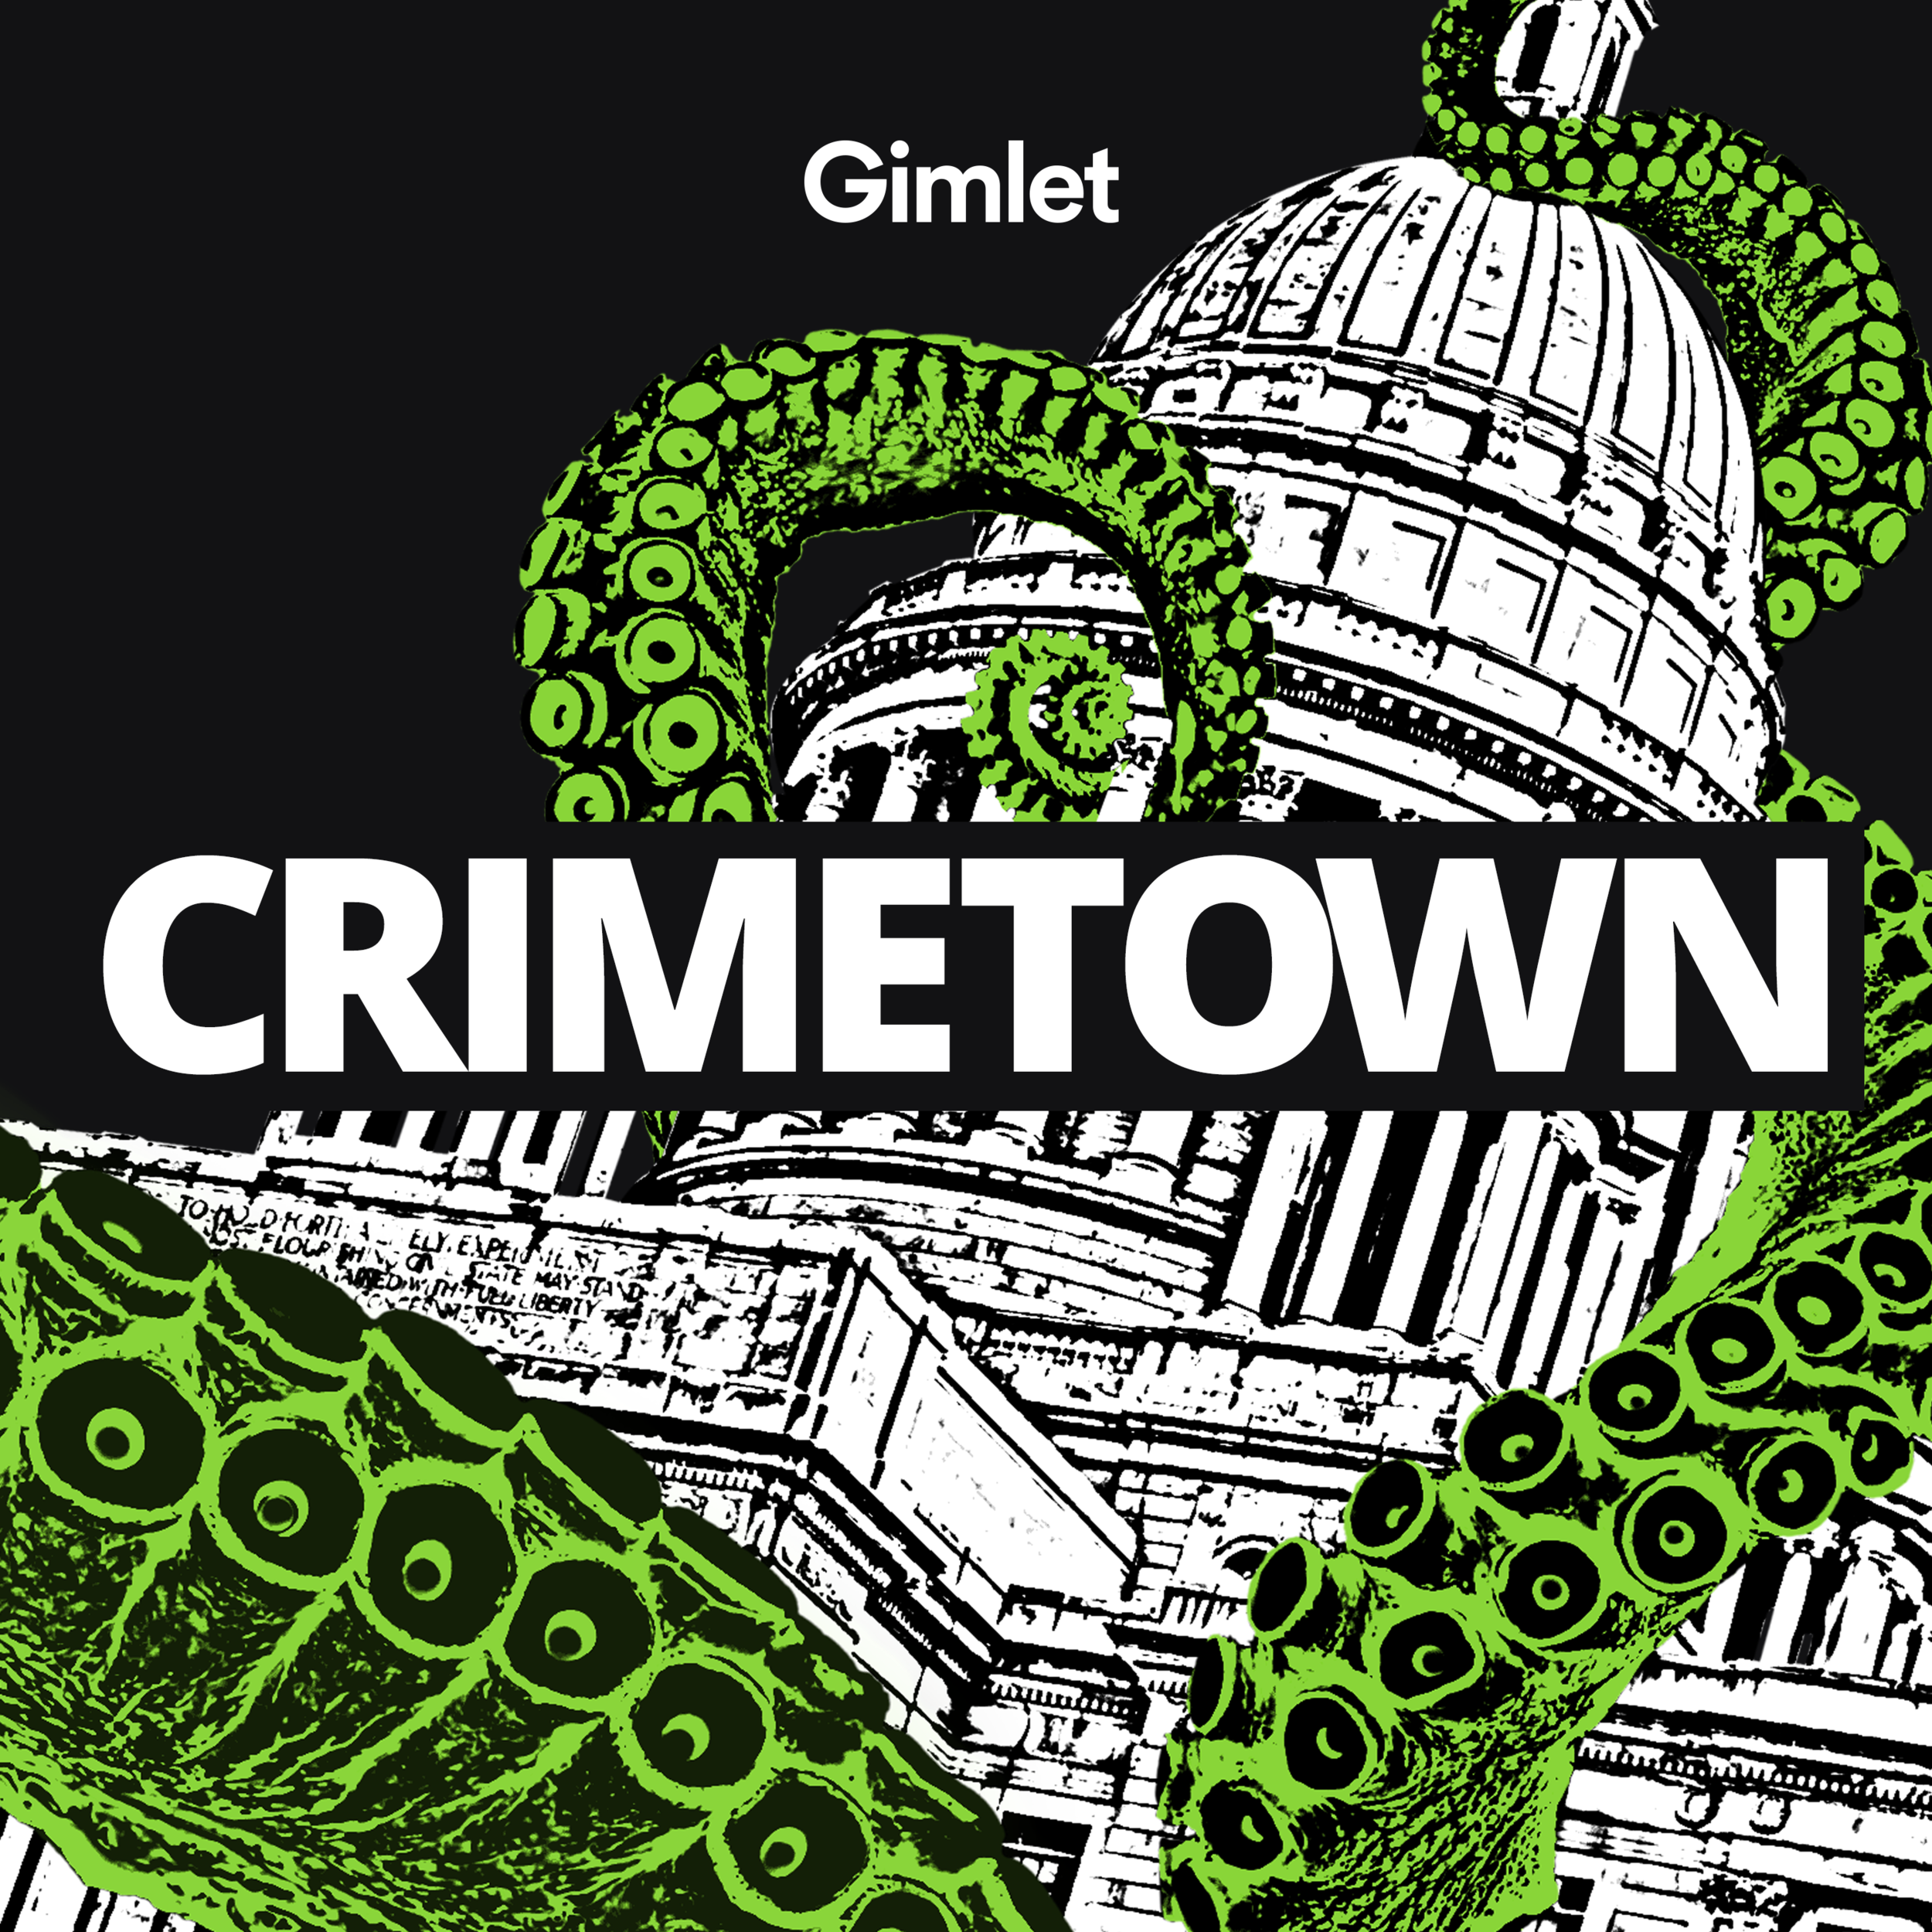 uploads_2F1517245711404-8olcslkt306-2e354ce8711fcc2e1d3f7e9fd4eb802c_2F20171116_Crimetown-ShowCover (1).png